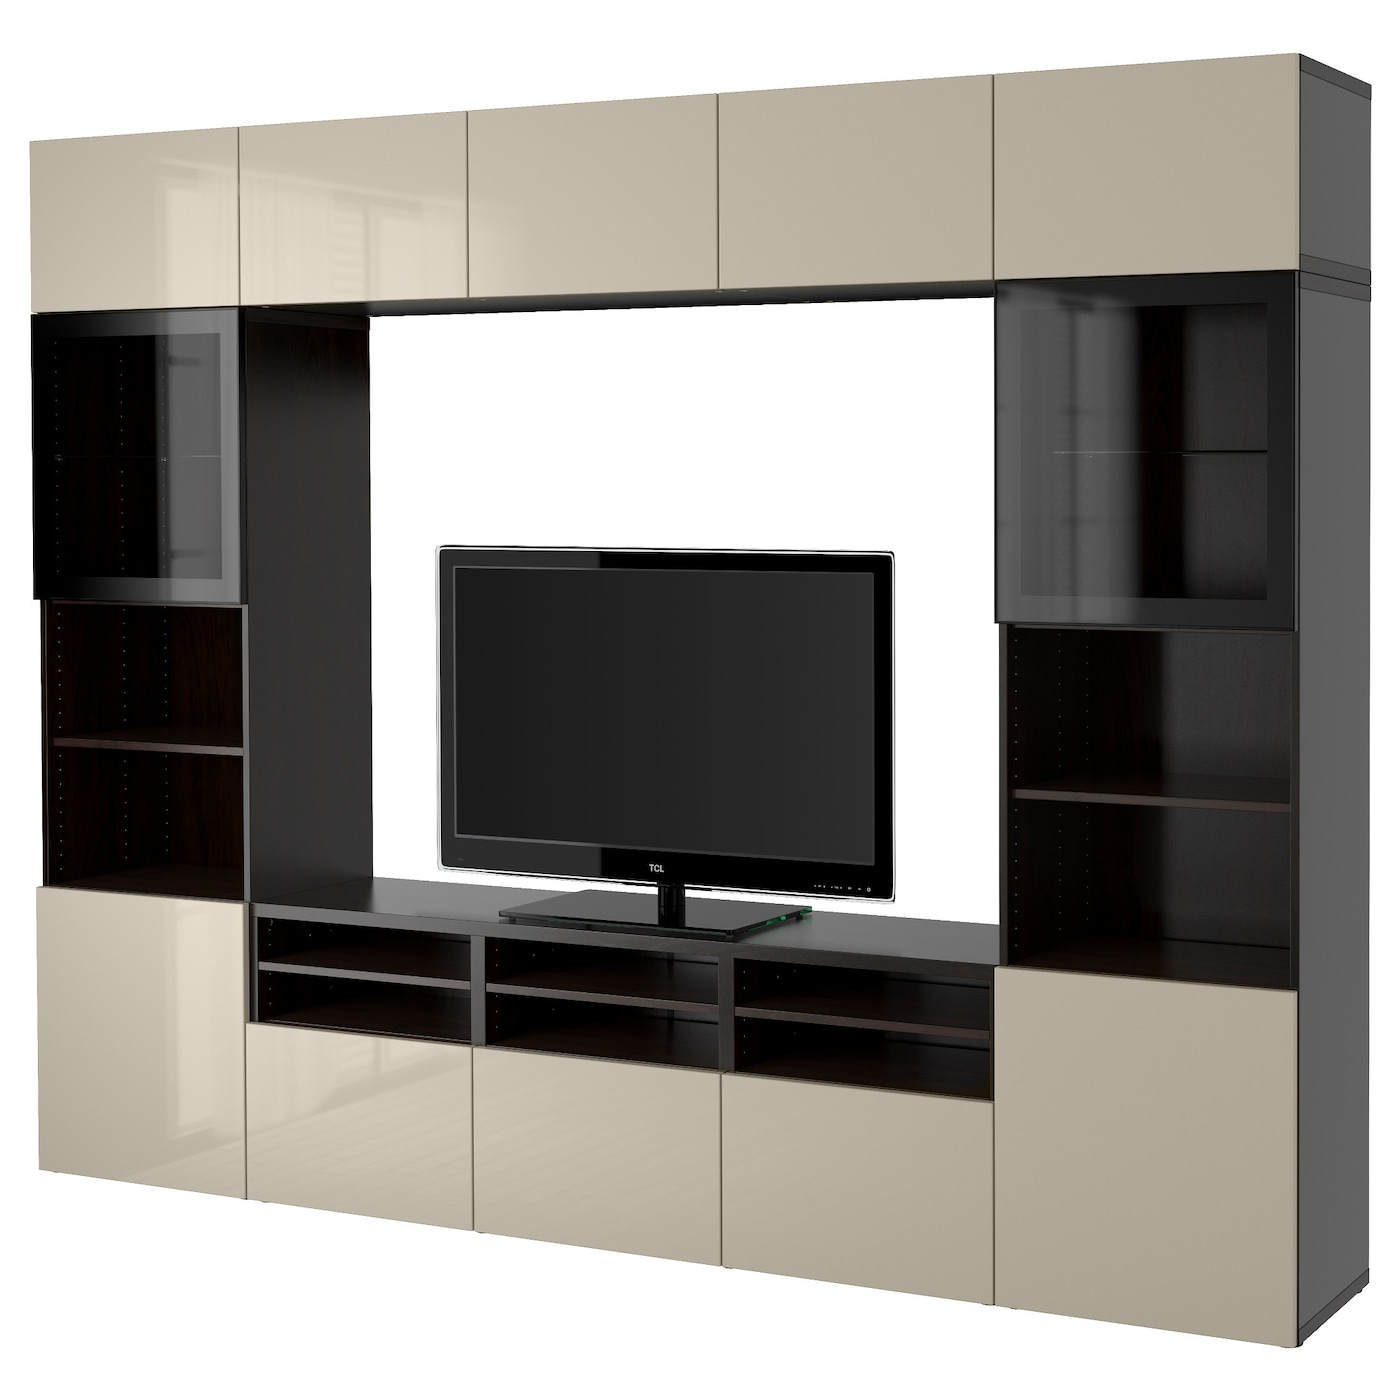 best combinaison rangt tv vitrines brun noir selsviken brillant beige verre transparent 300 x. Black Bedroom Furniture Sets. Home Design Ideas